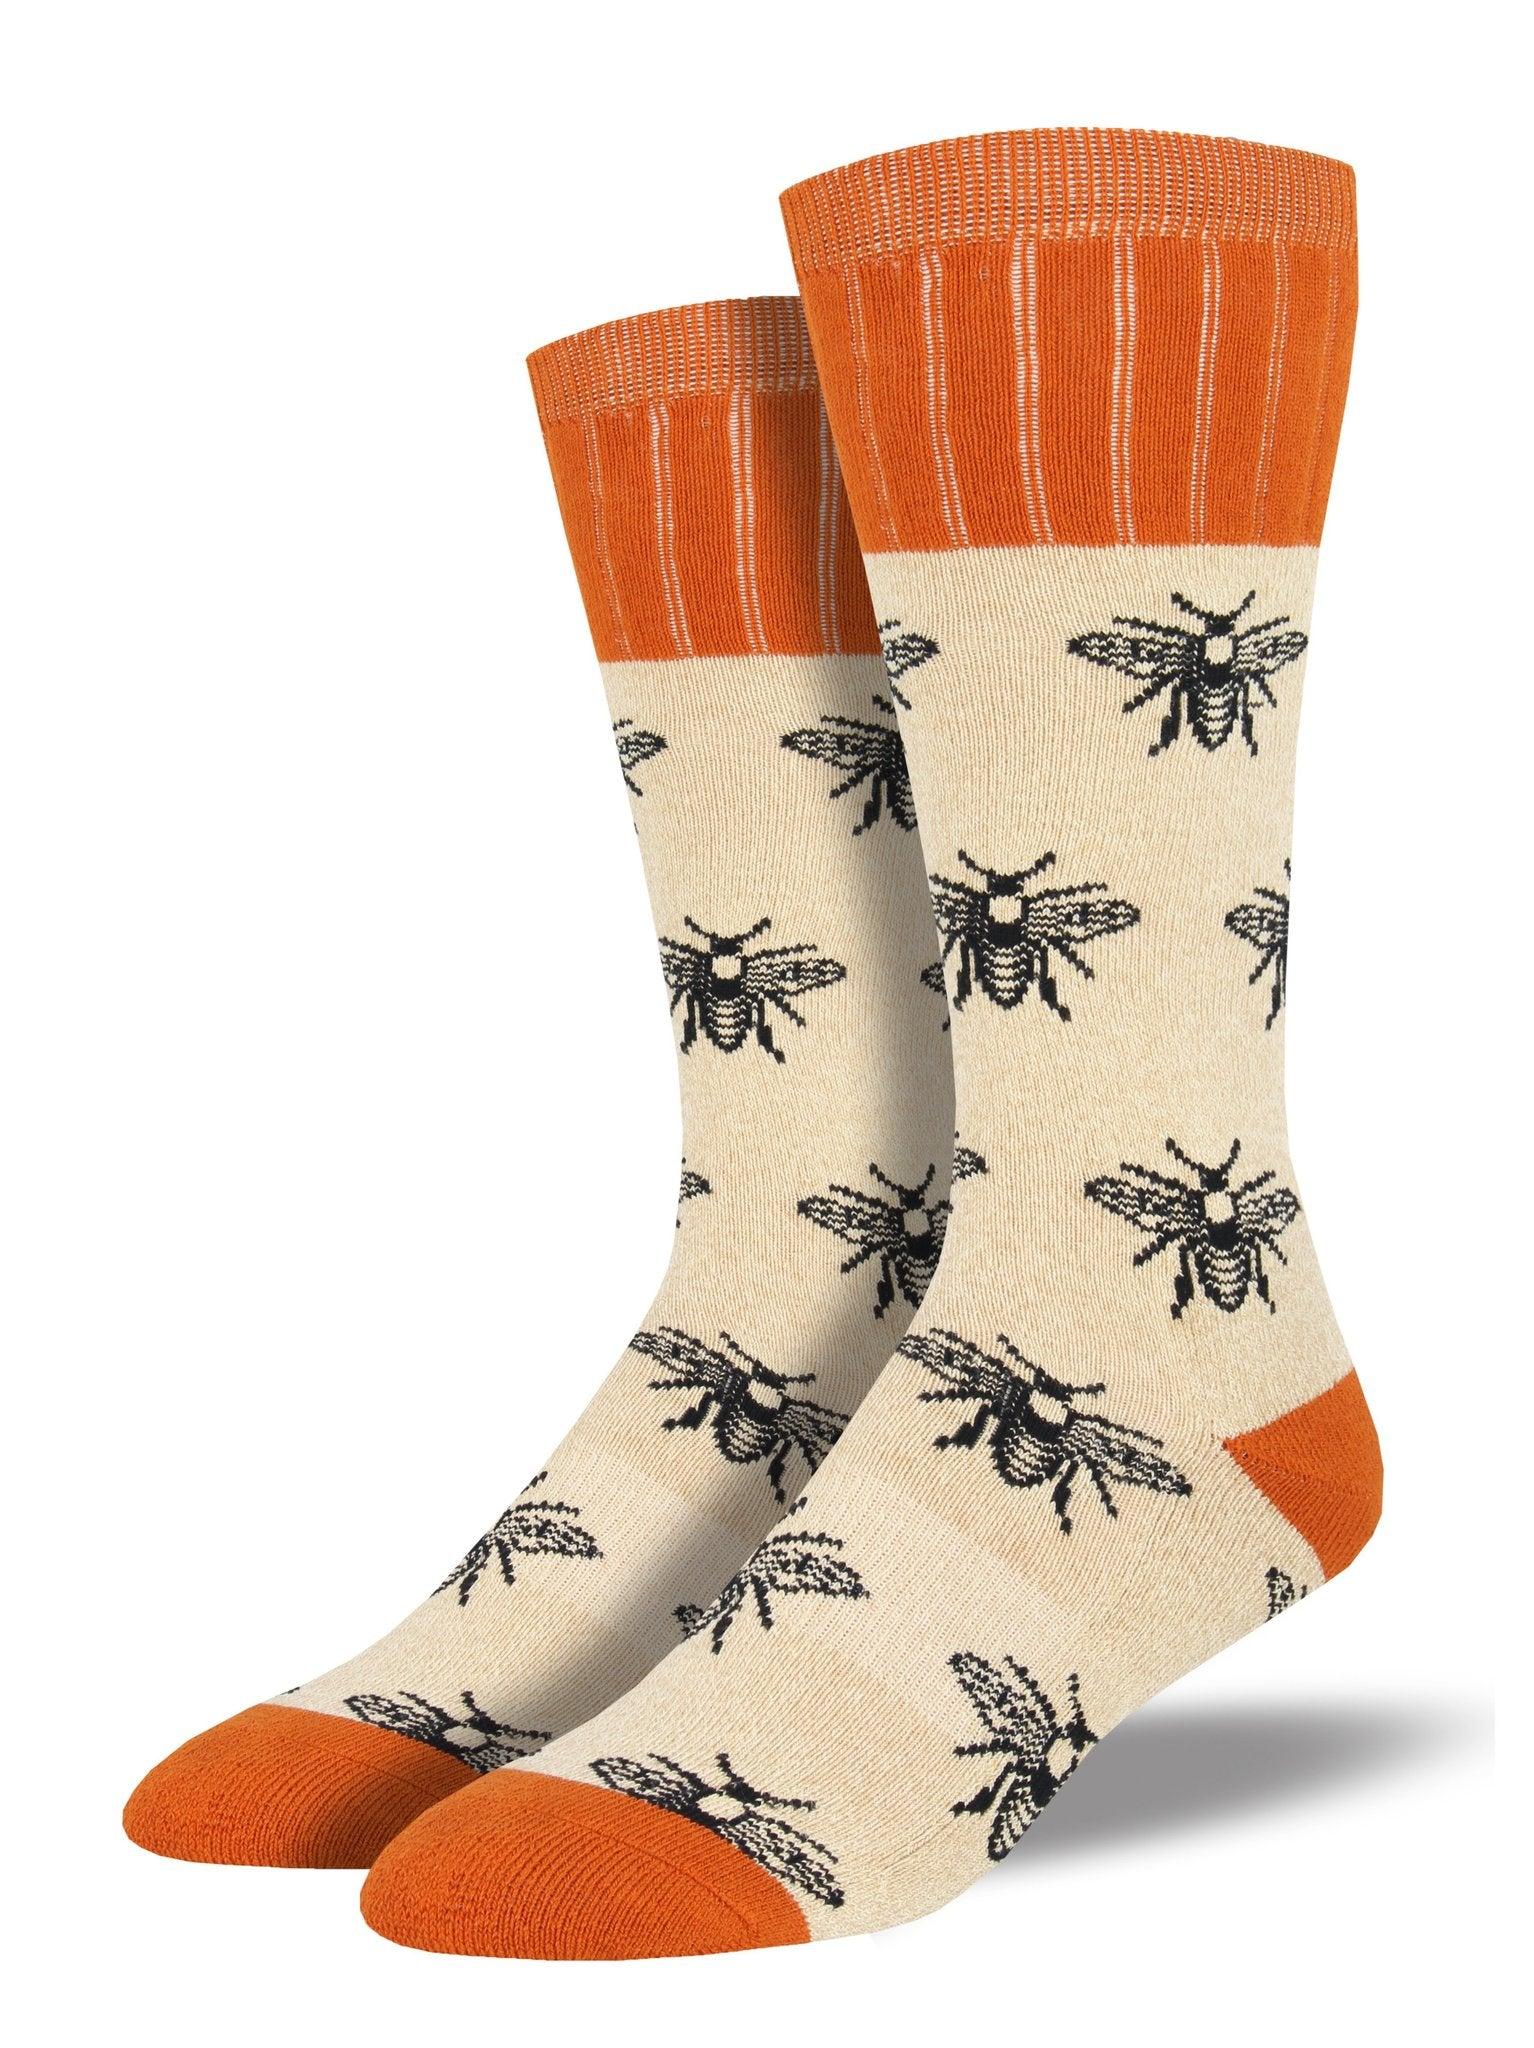 Men's Bee Socks